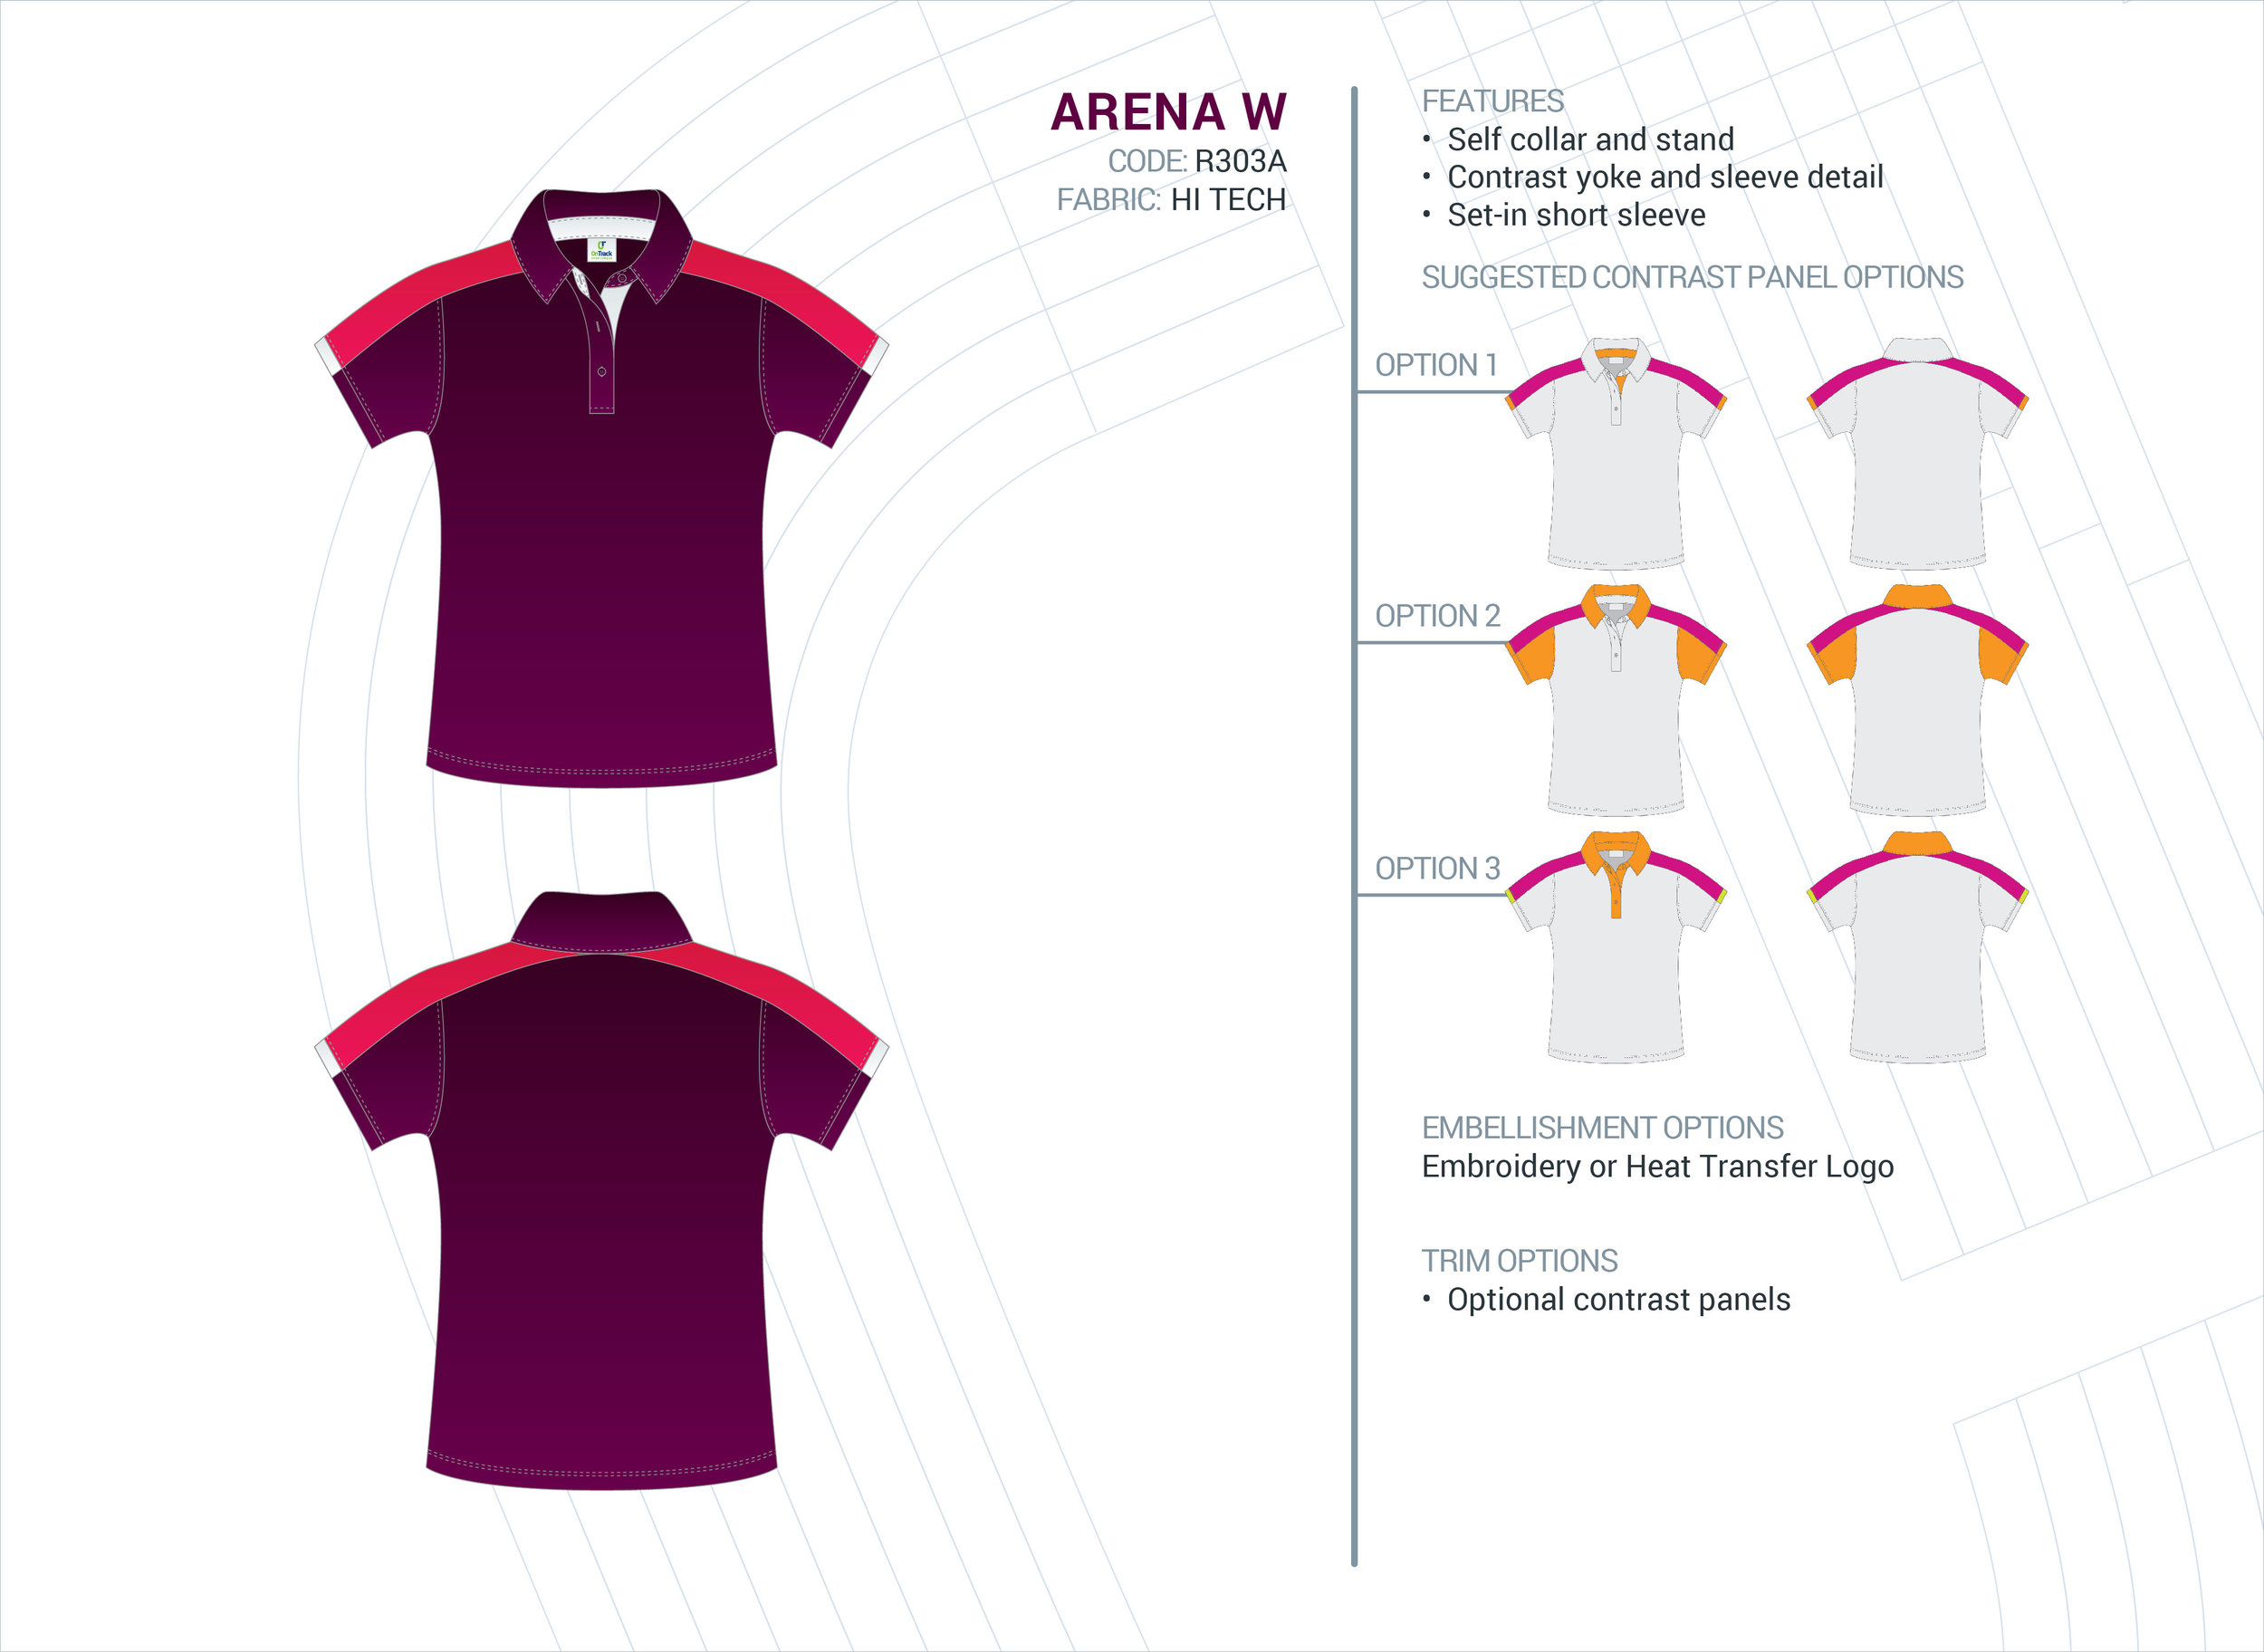 Women's Arena Hi-Tech Polo